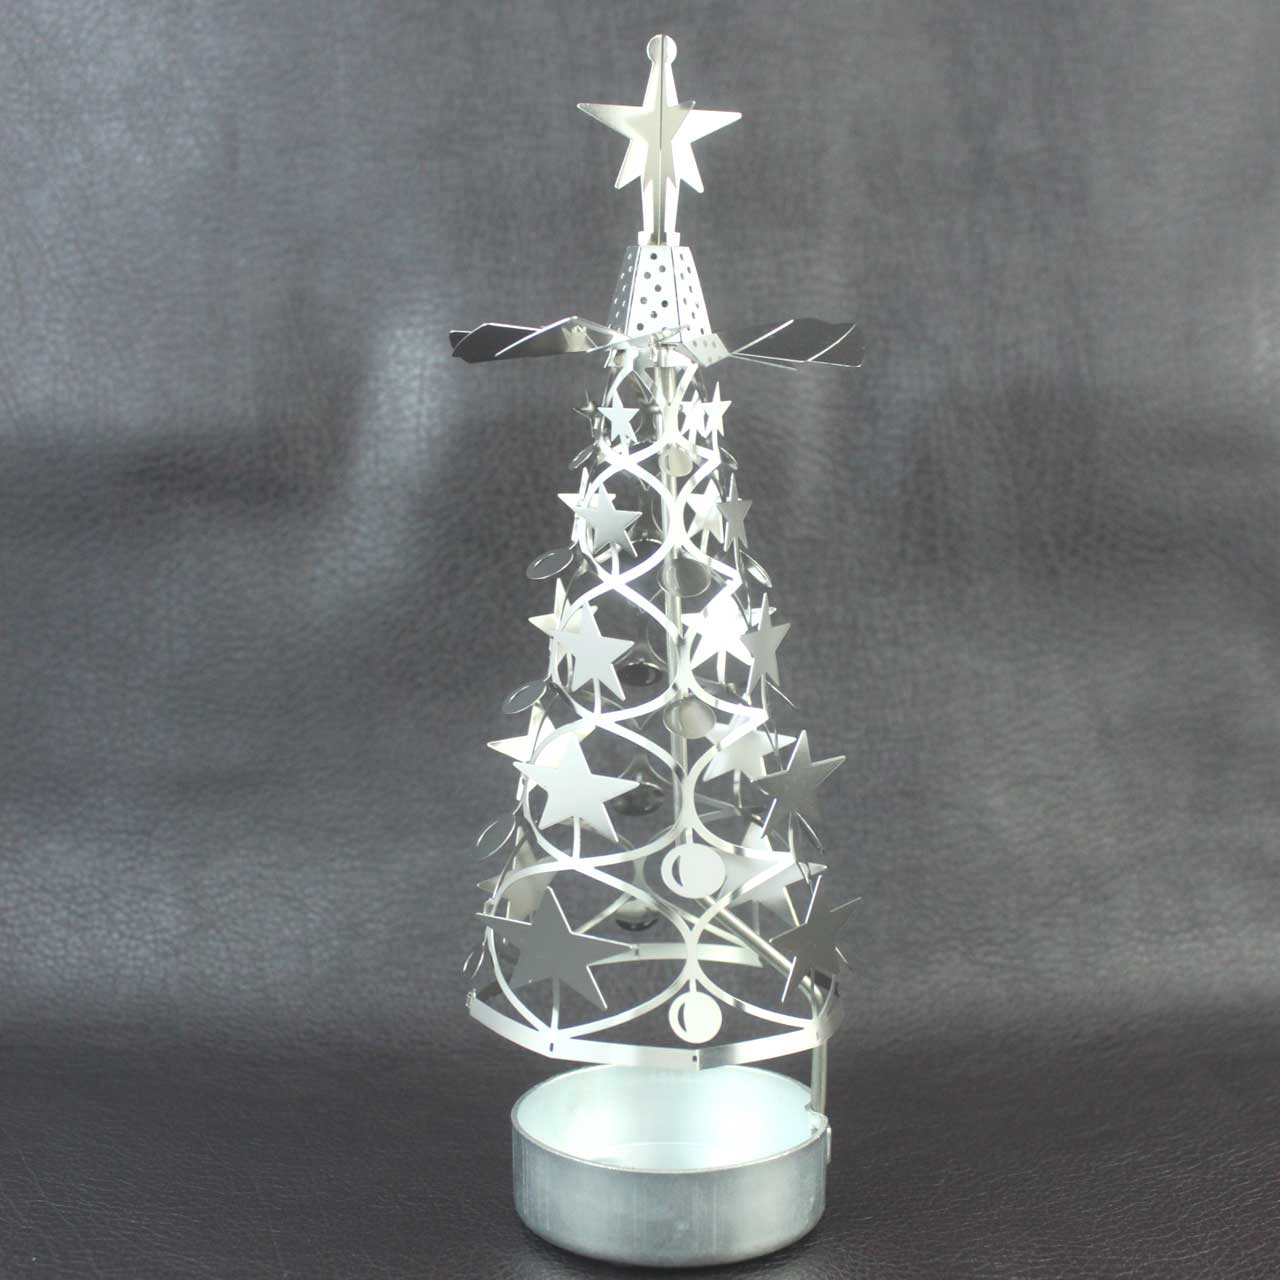 Rotating Christmas Tree Candle Holder | The Design Gift Shop